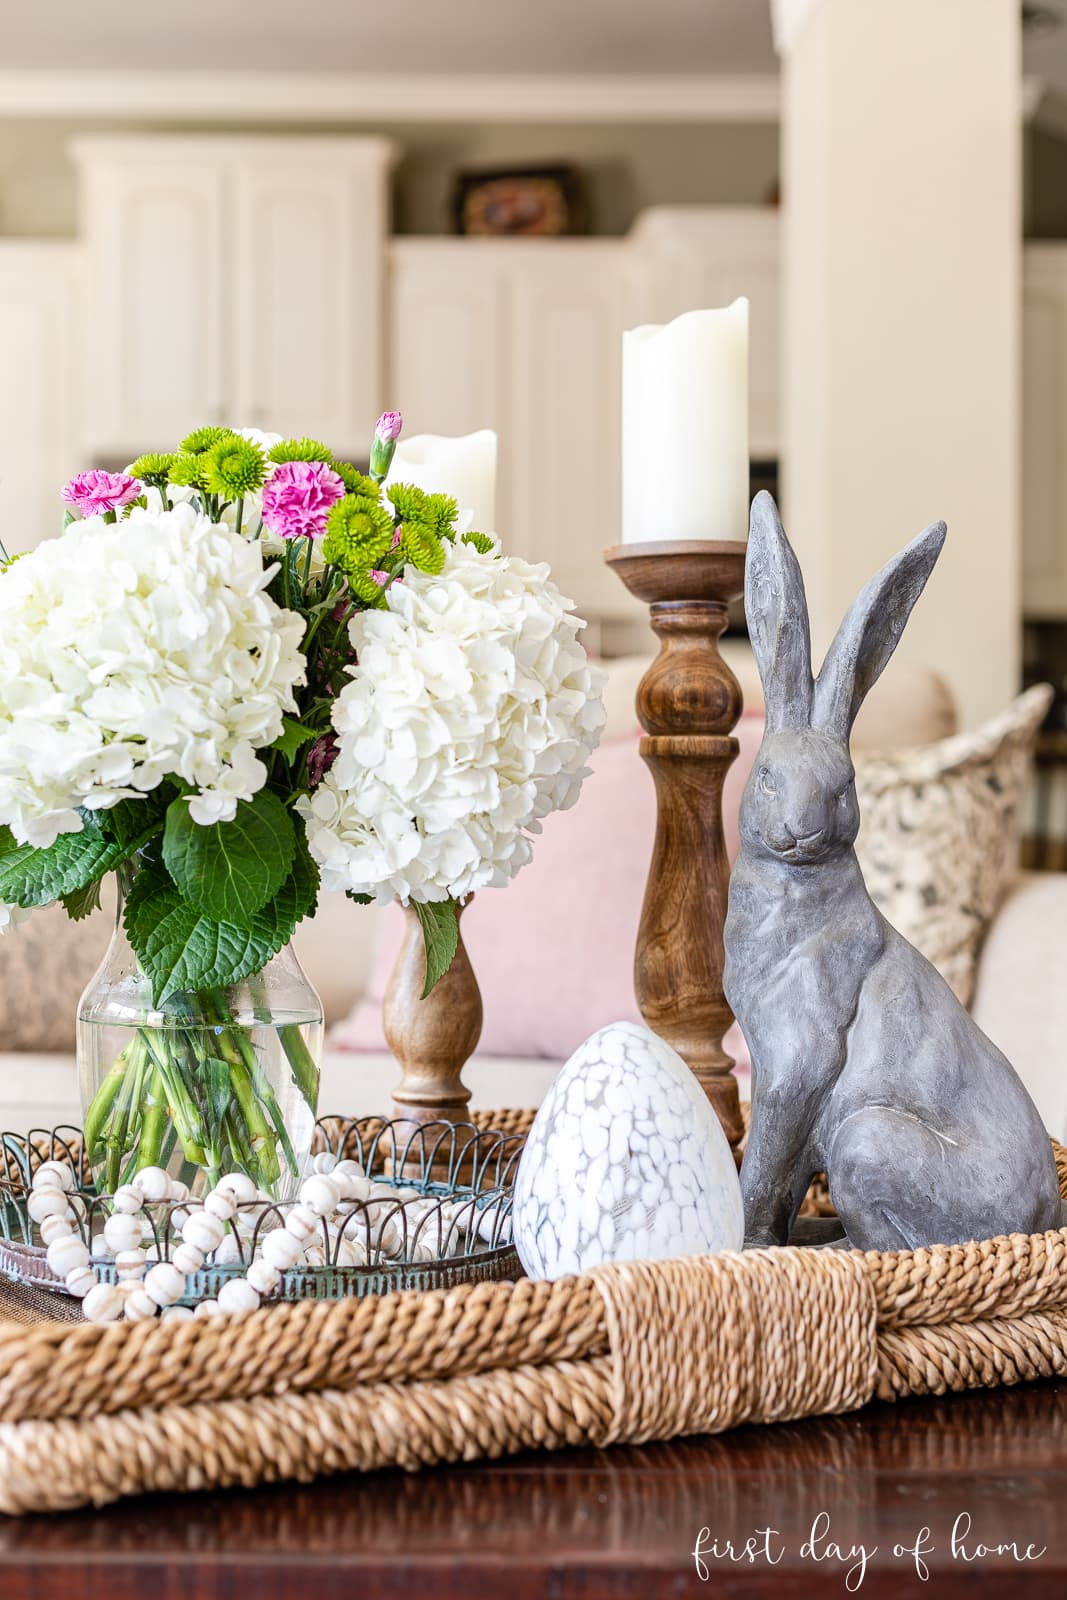 Spring coffee table decor with basket tray, bunny, candles, egg cloche and a fresh hydrangea floral centerpiece